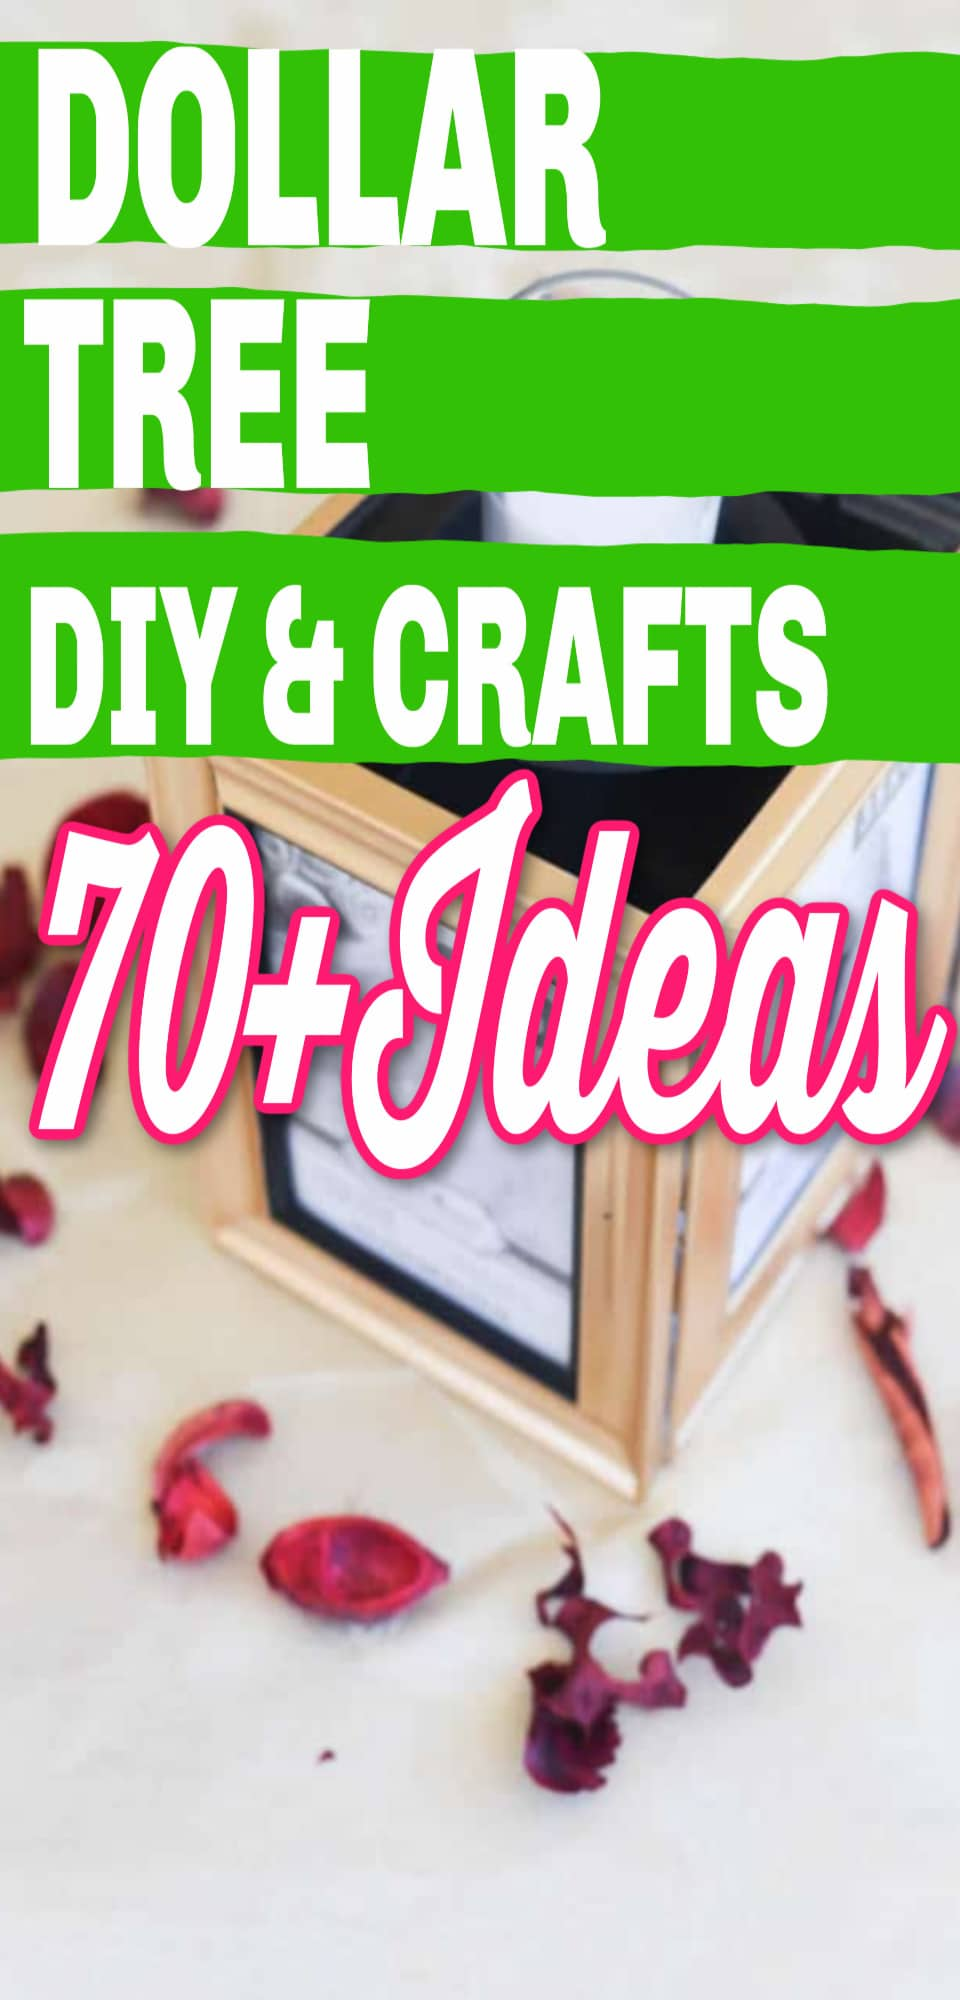 70+ Dollar Tree DIY and Craft Ideas - Easy Dollar Store crafts that you can make on a budget! #dollartree #diyandcrafts #diycrafts via @clarkscondensed